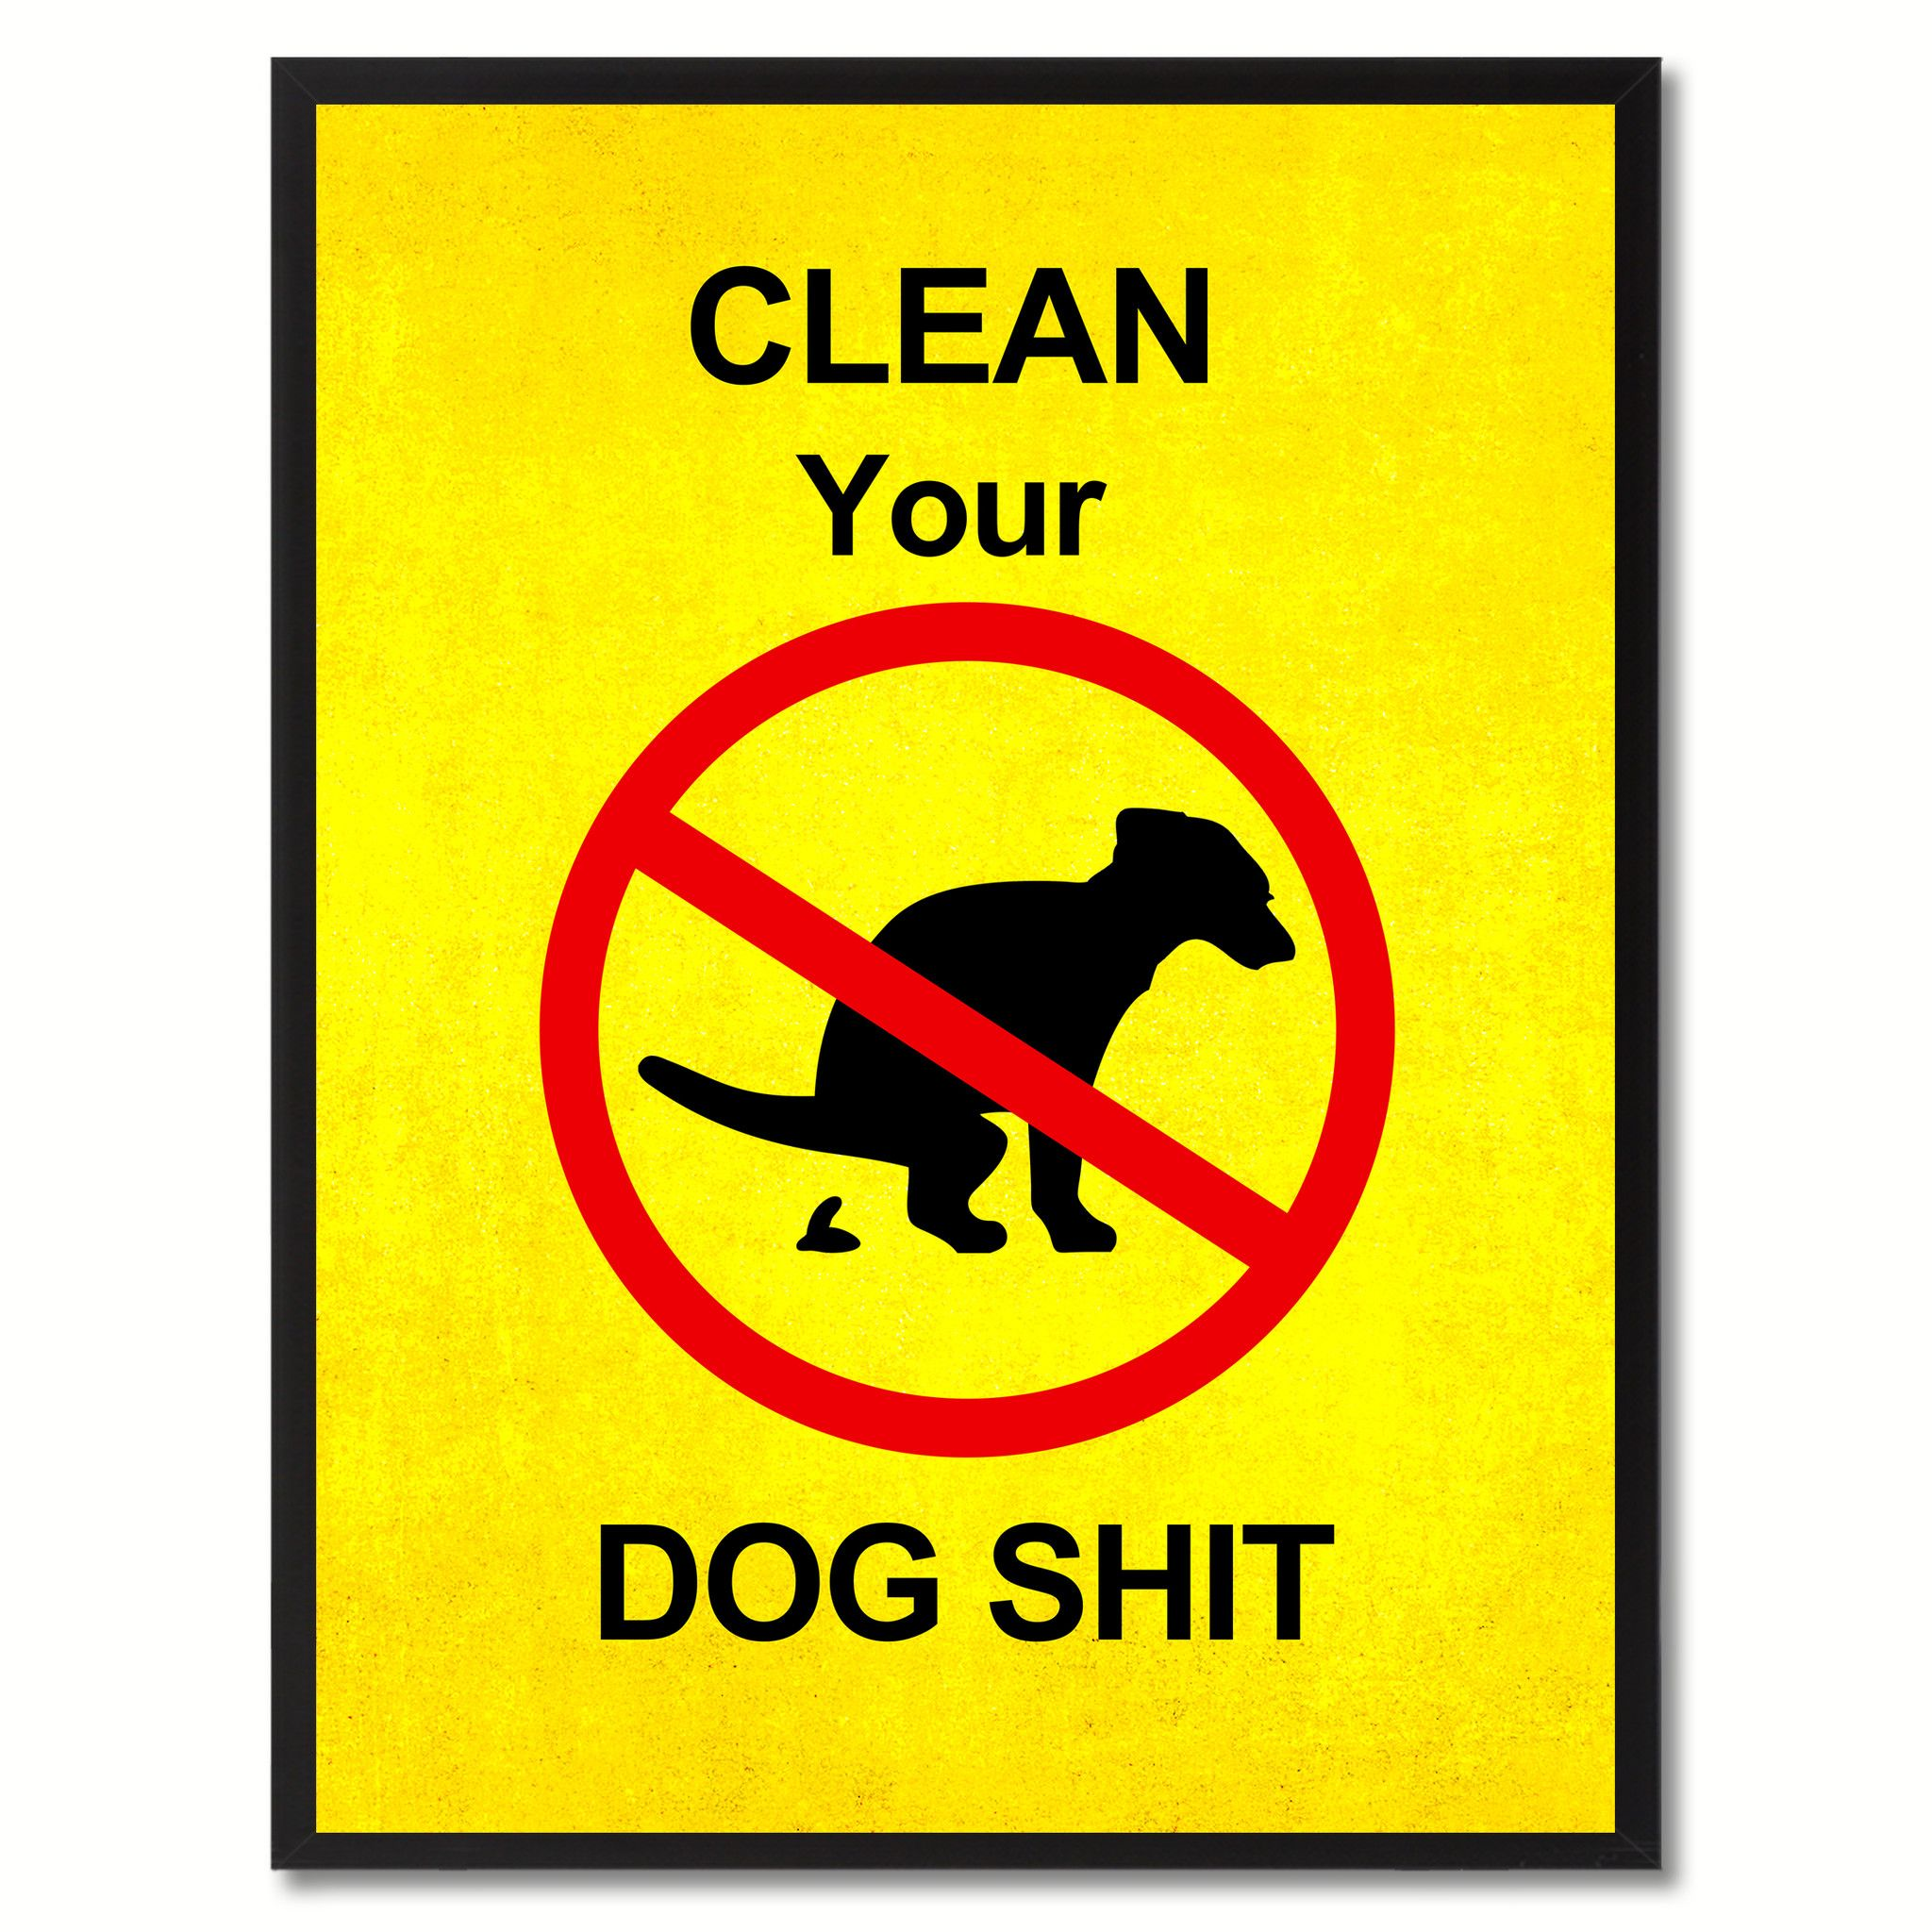 Clean Your Dog Shit Funny Sign Yellow Print on Canvas Picture Frames ...